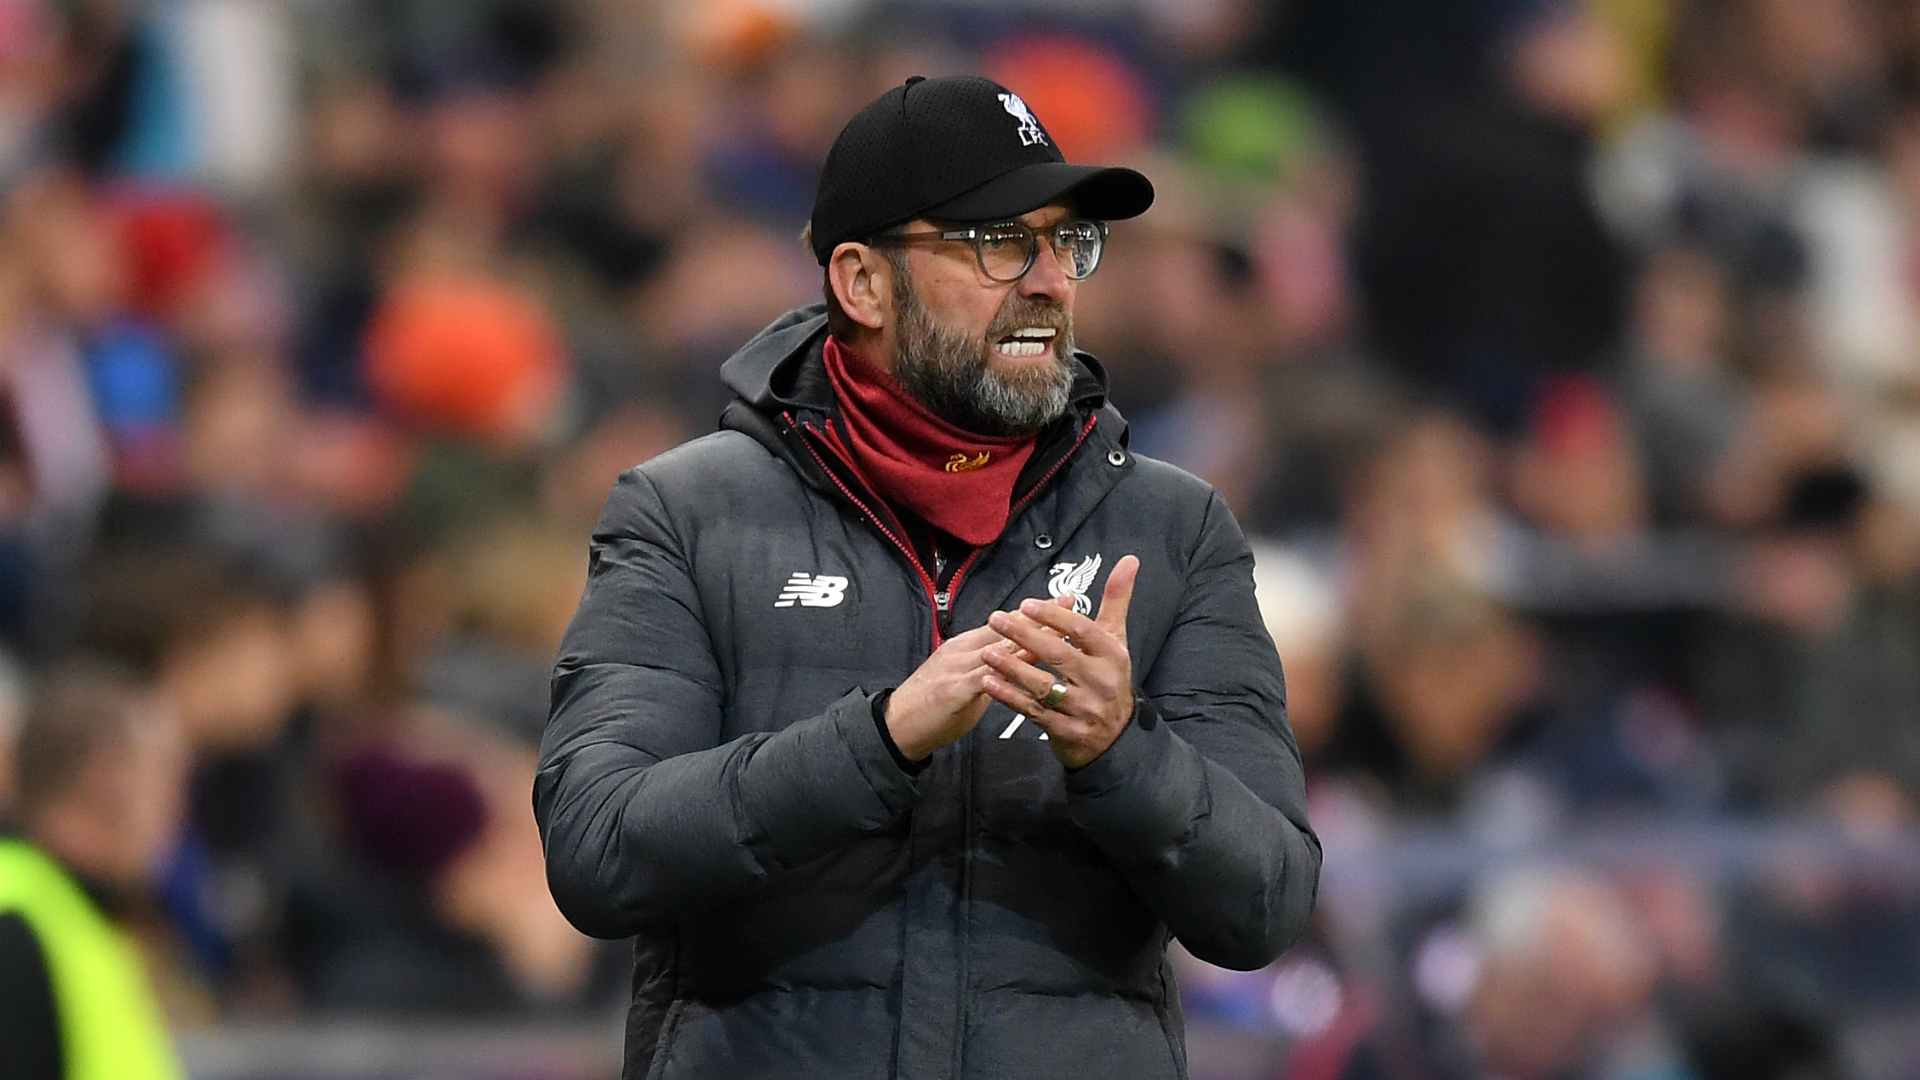 Klopp and Liverpool have 'immense' desire to keep winning trophies